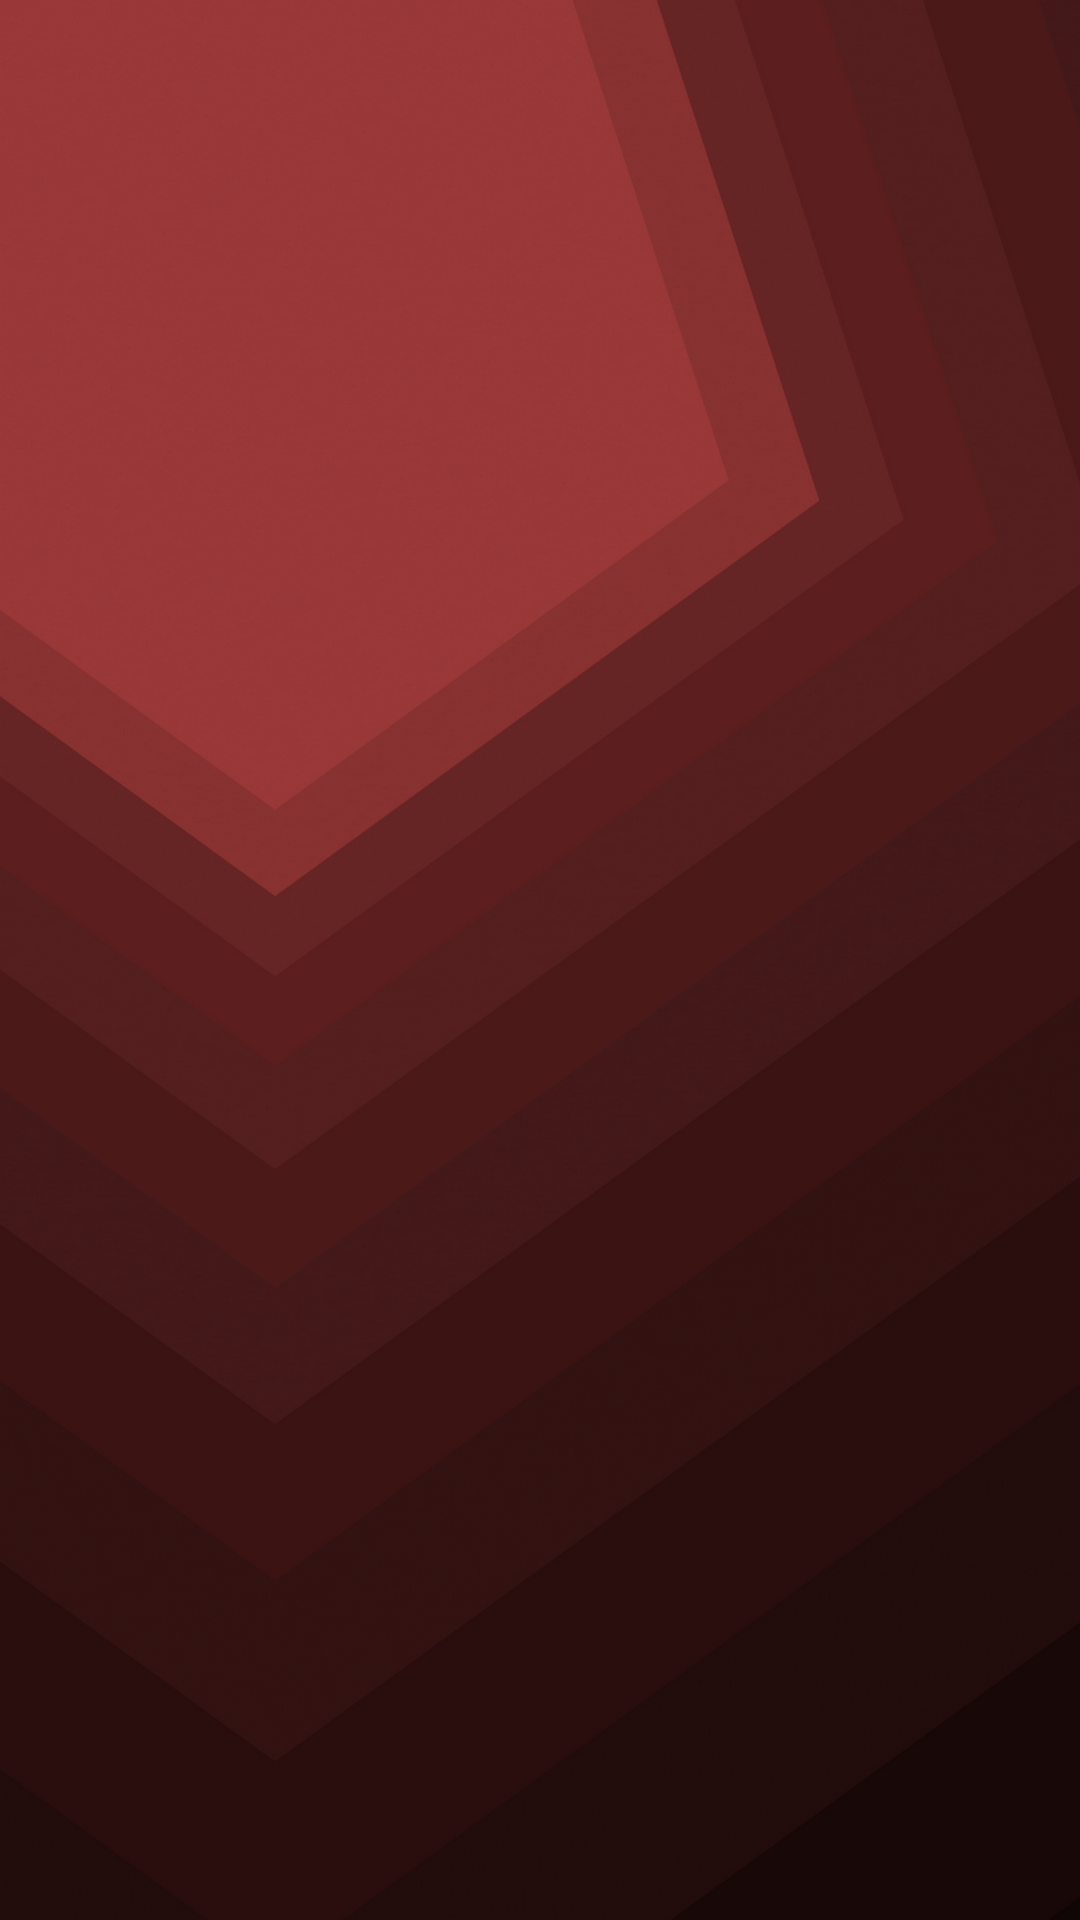 click here to download 1080x1920 pixel red parallax android best wallpaper